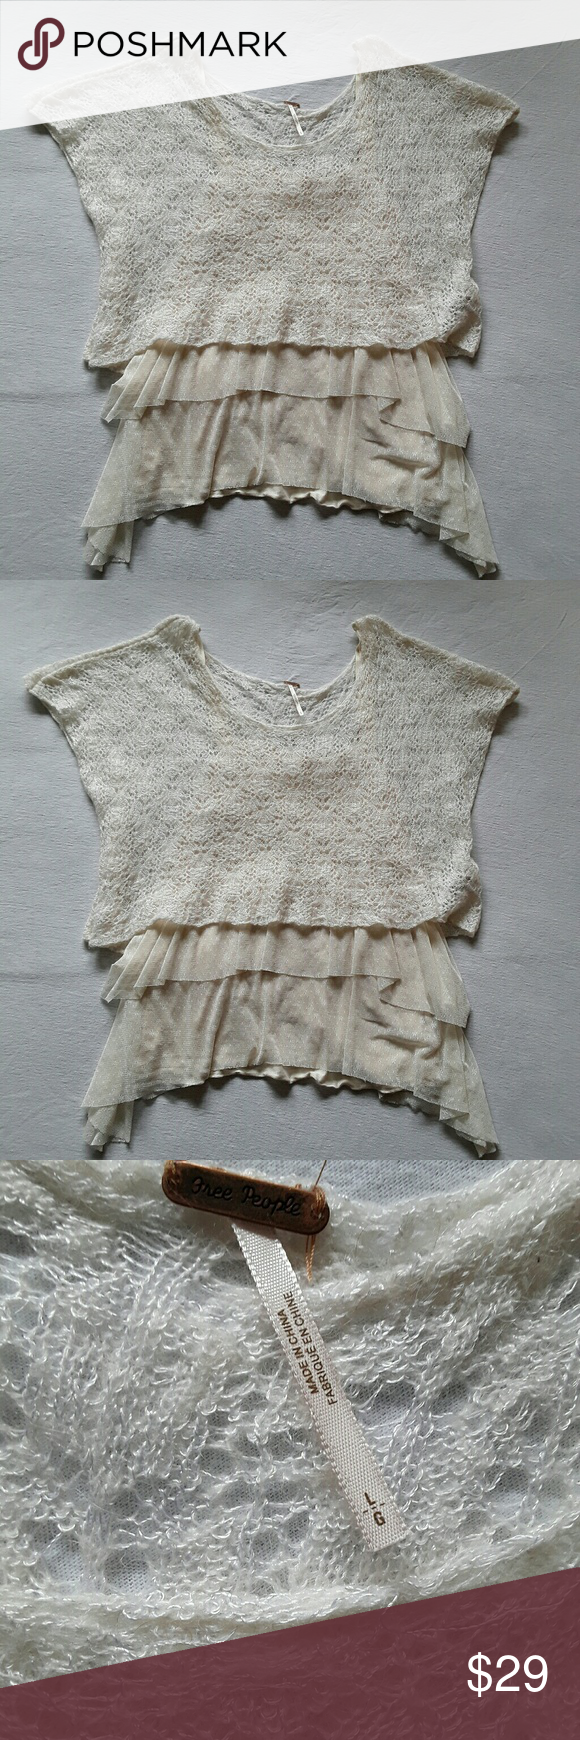 Free People Luna Twofer Layered Top size L Gently used, no rips, stains or tears, signs of light wash and wear. Cream colored camisole with a tiered ruffle lace camisole over it plus a cropped lace knit short sleeved top over that. Layers are sewn together at the shoulder seam.  Length at side seams ca.31 inches to ca. 29 inches in the middle. Chest across of stretchy cami piece ca 17 inches.The edges of the laces sections are left unfinished. Shell 42% rayon, 28% wool, 22% nylon, 8% alpaca…